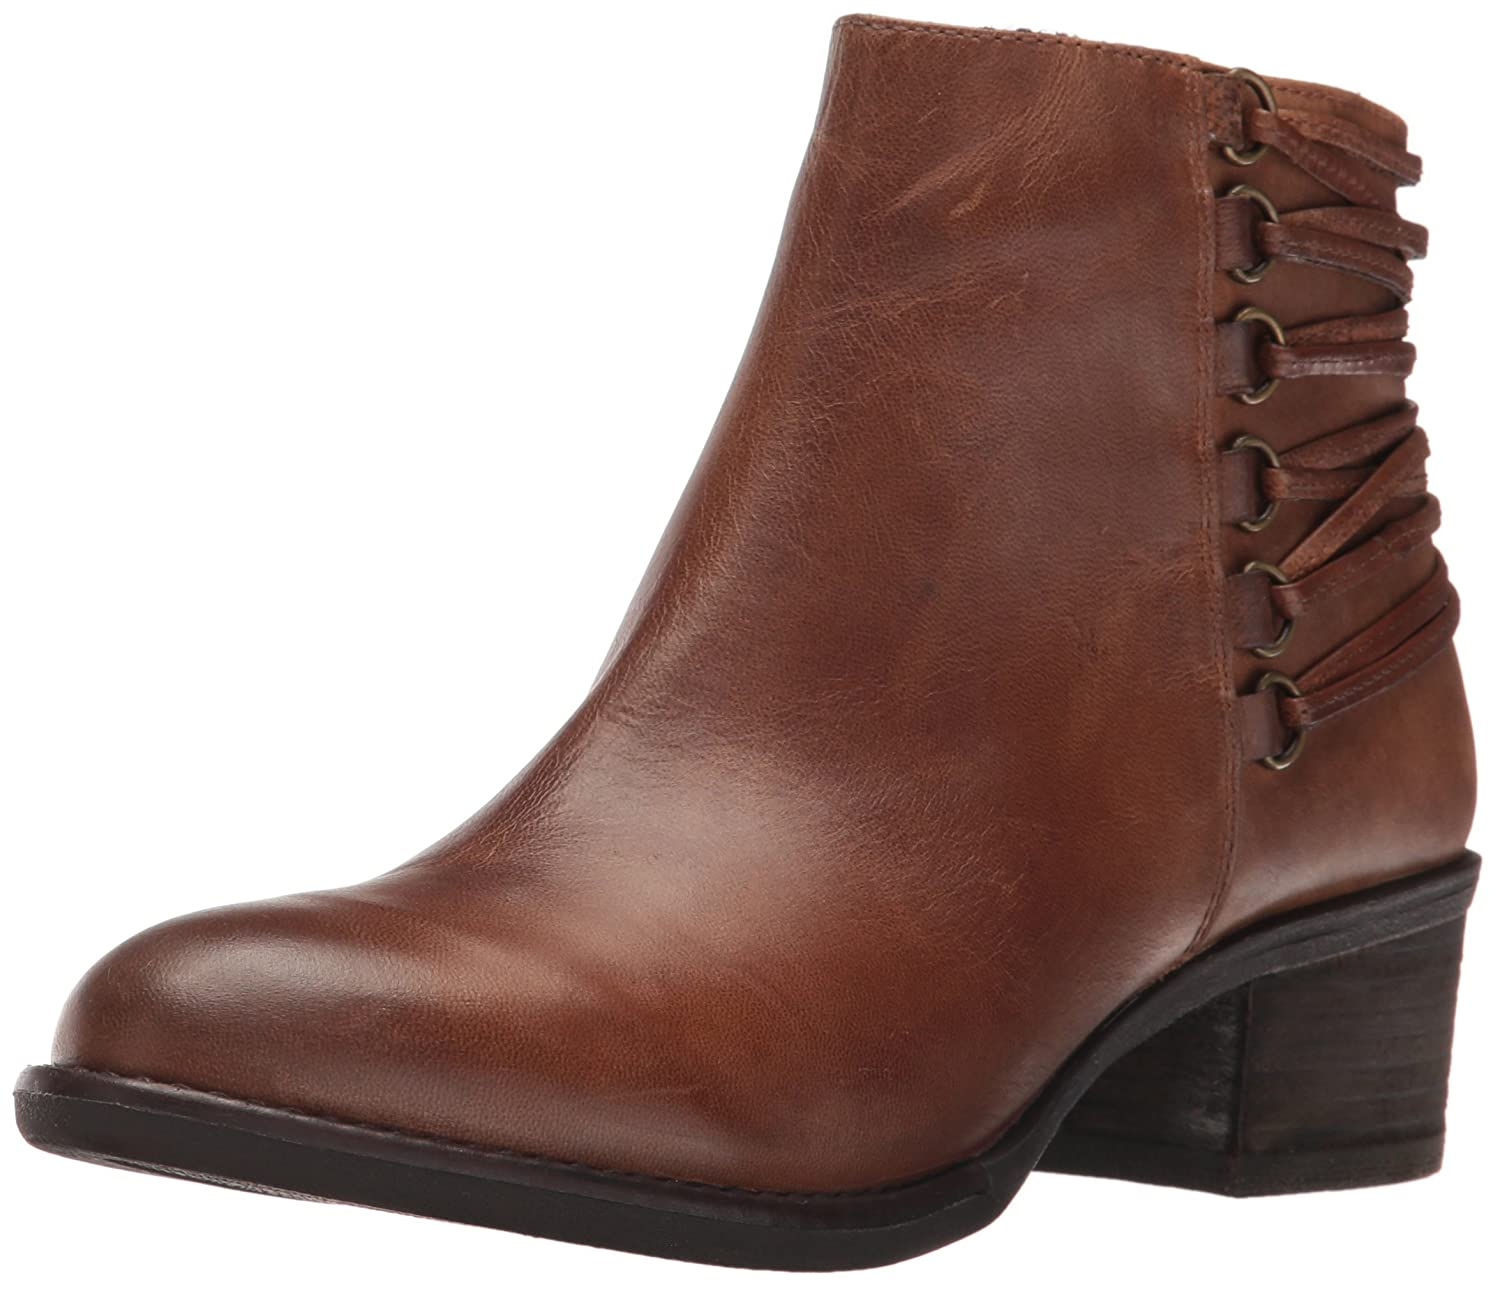 Steve Madden Women's Caldor Boot B01GF2WSHO 7 B(M) US|Cognac Leather